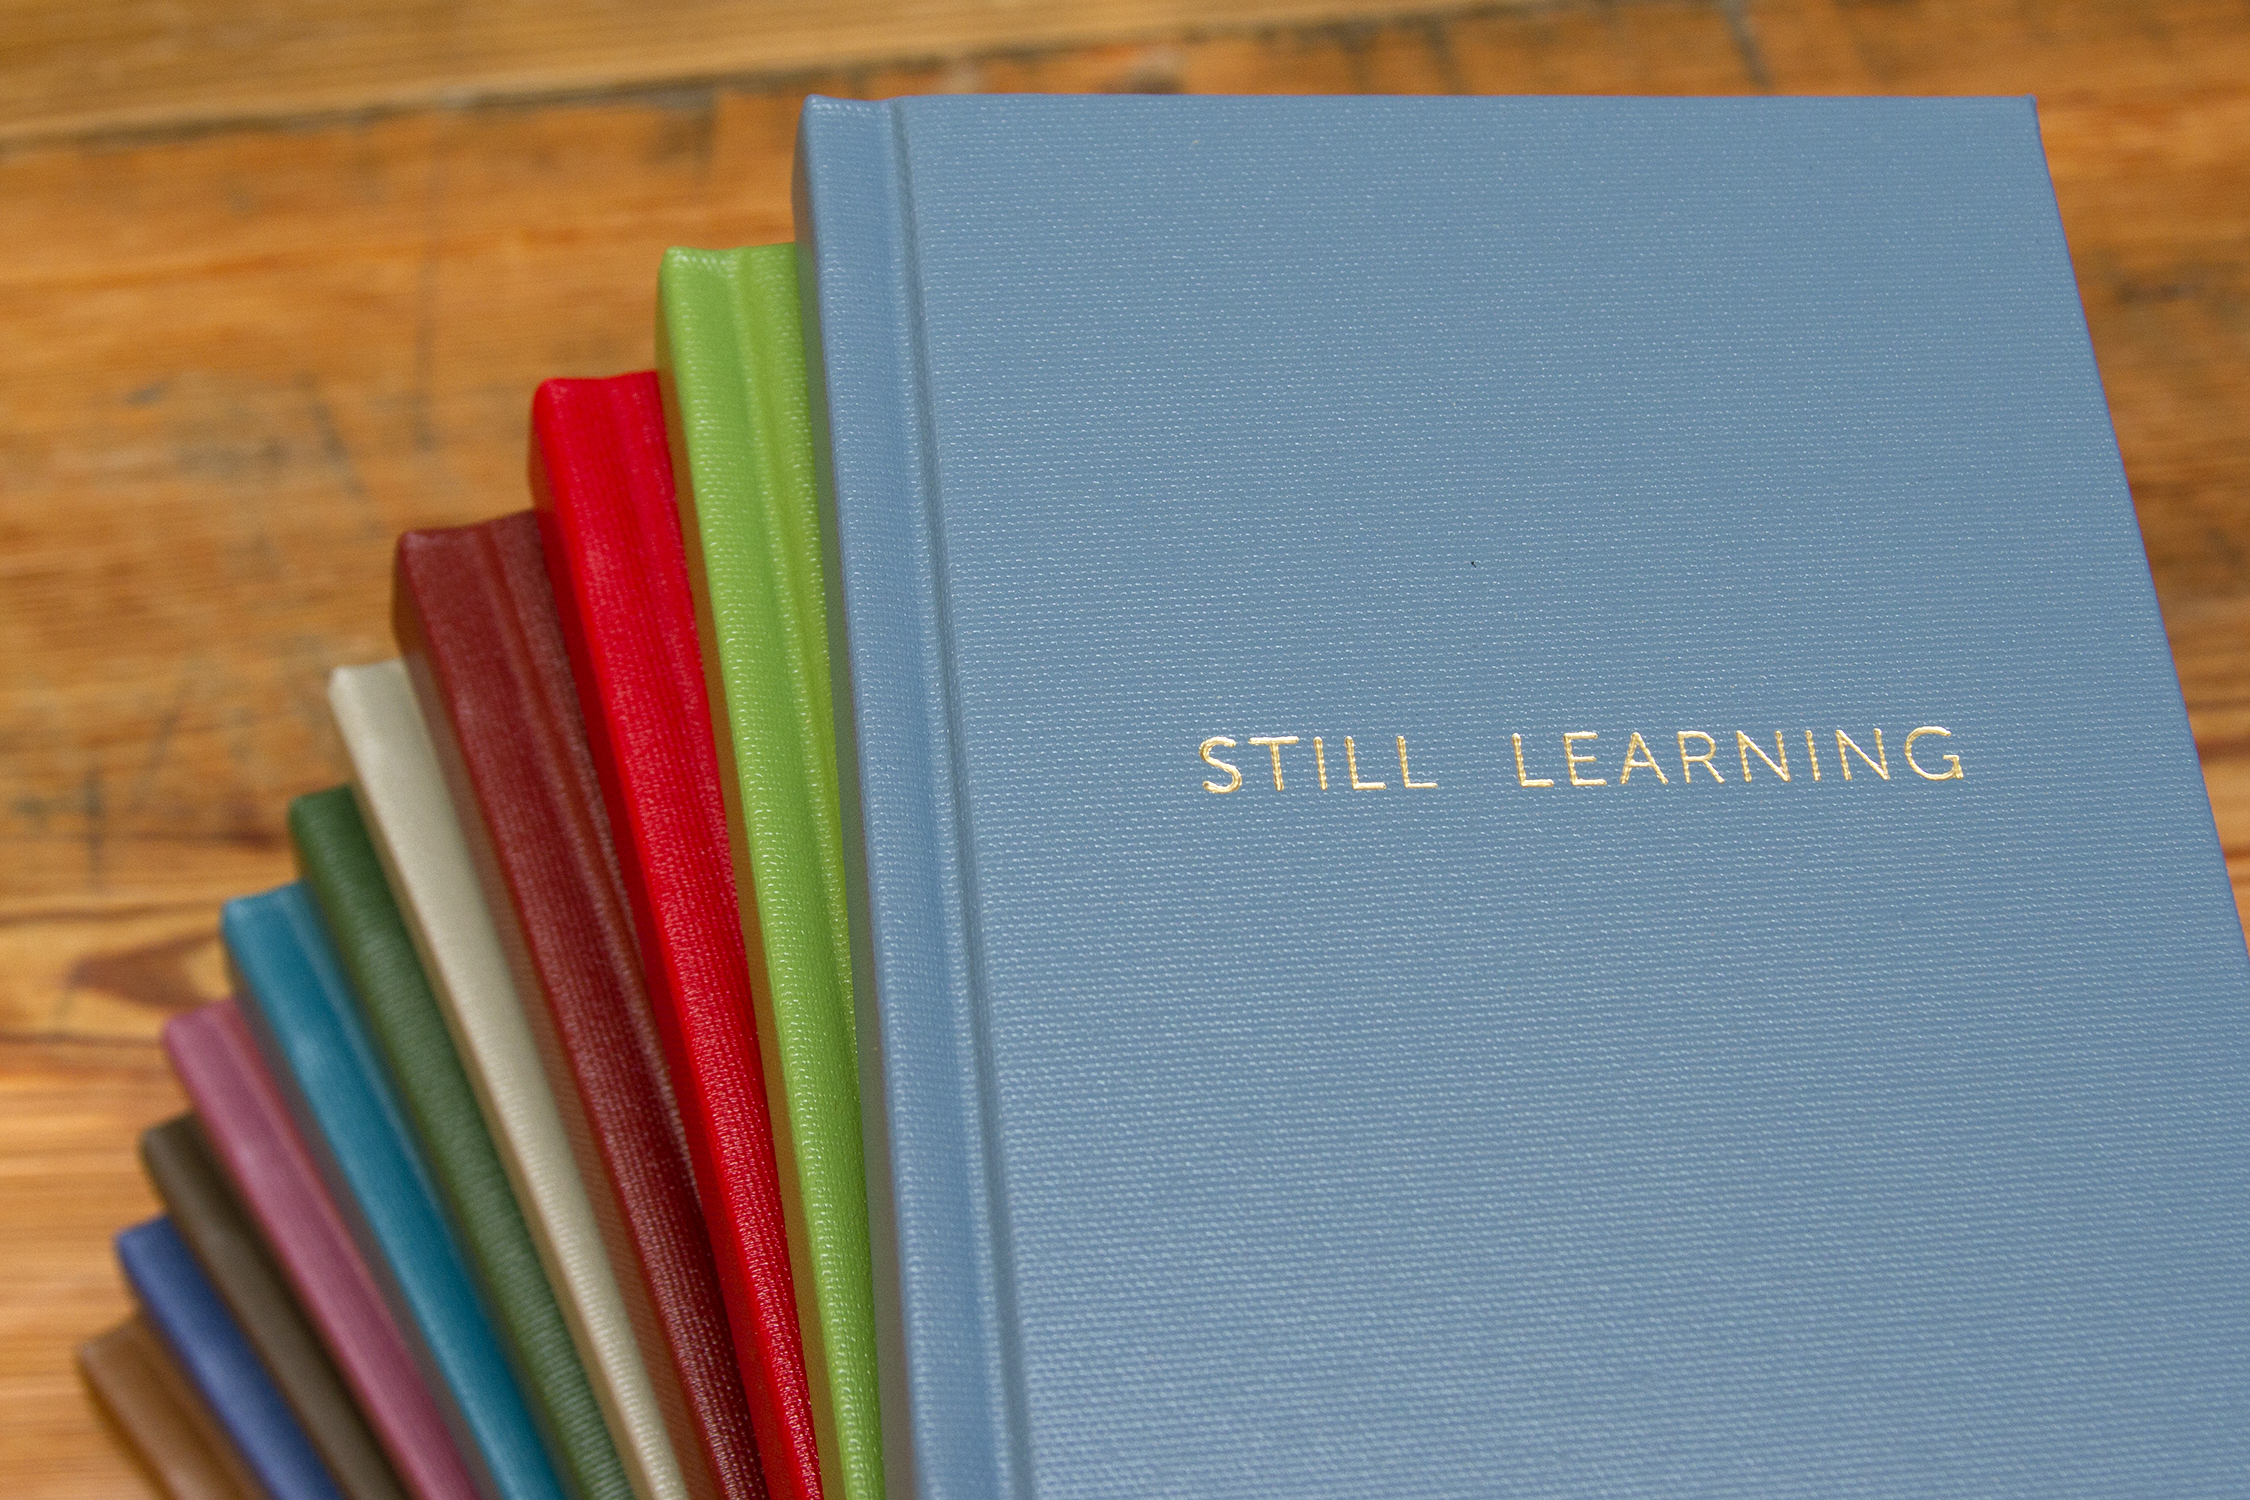 STILL LEARNING daily planners made by Candor Arts. Photo courtesy of Candor Arts.